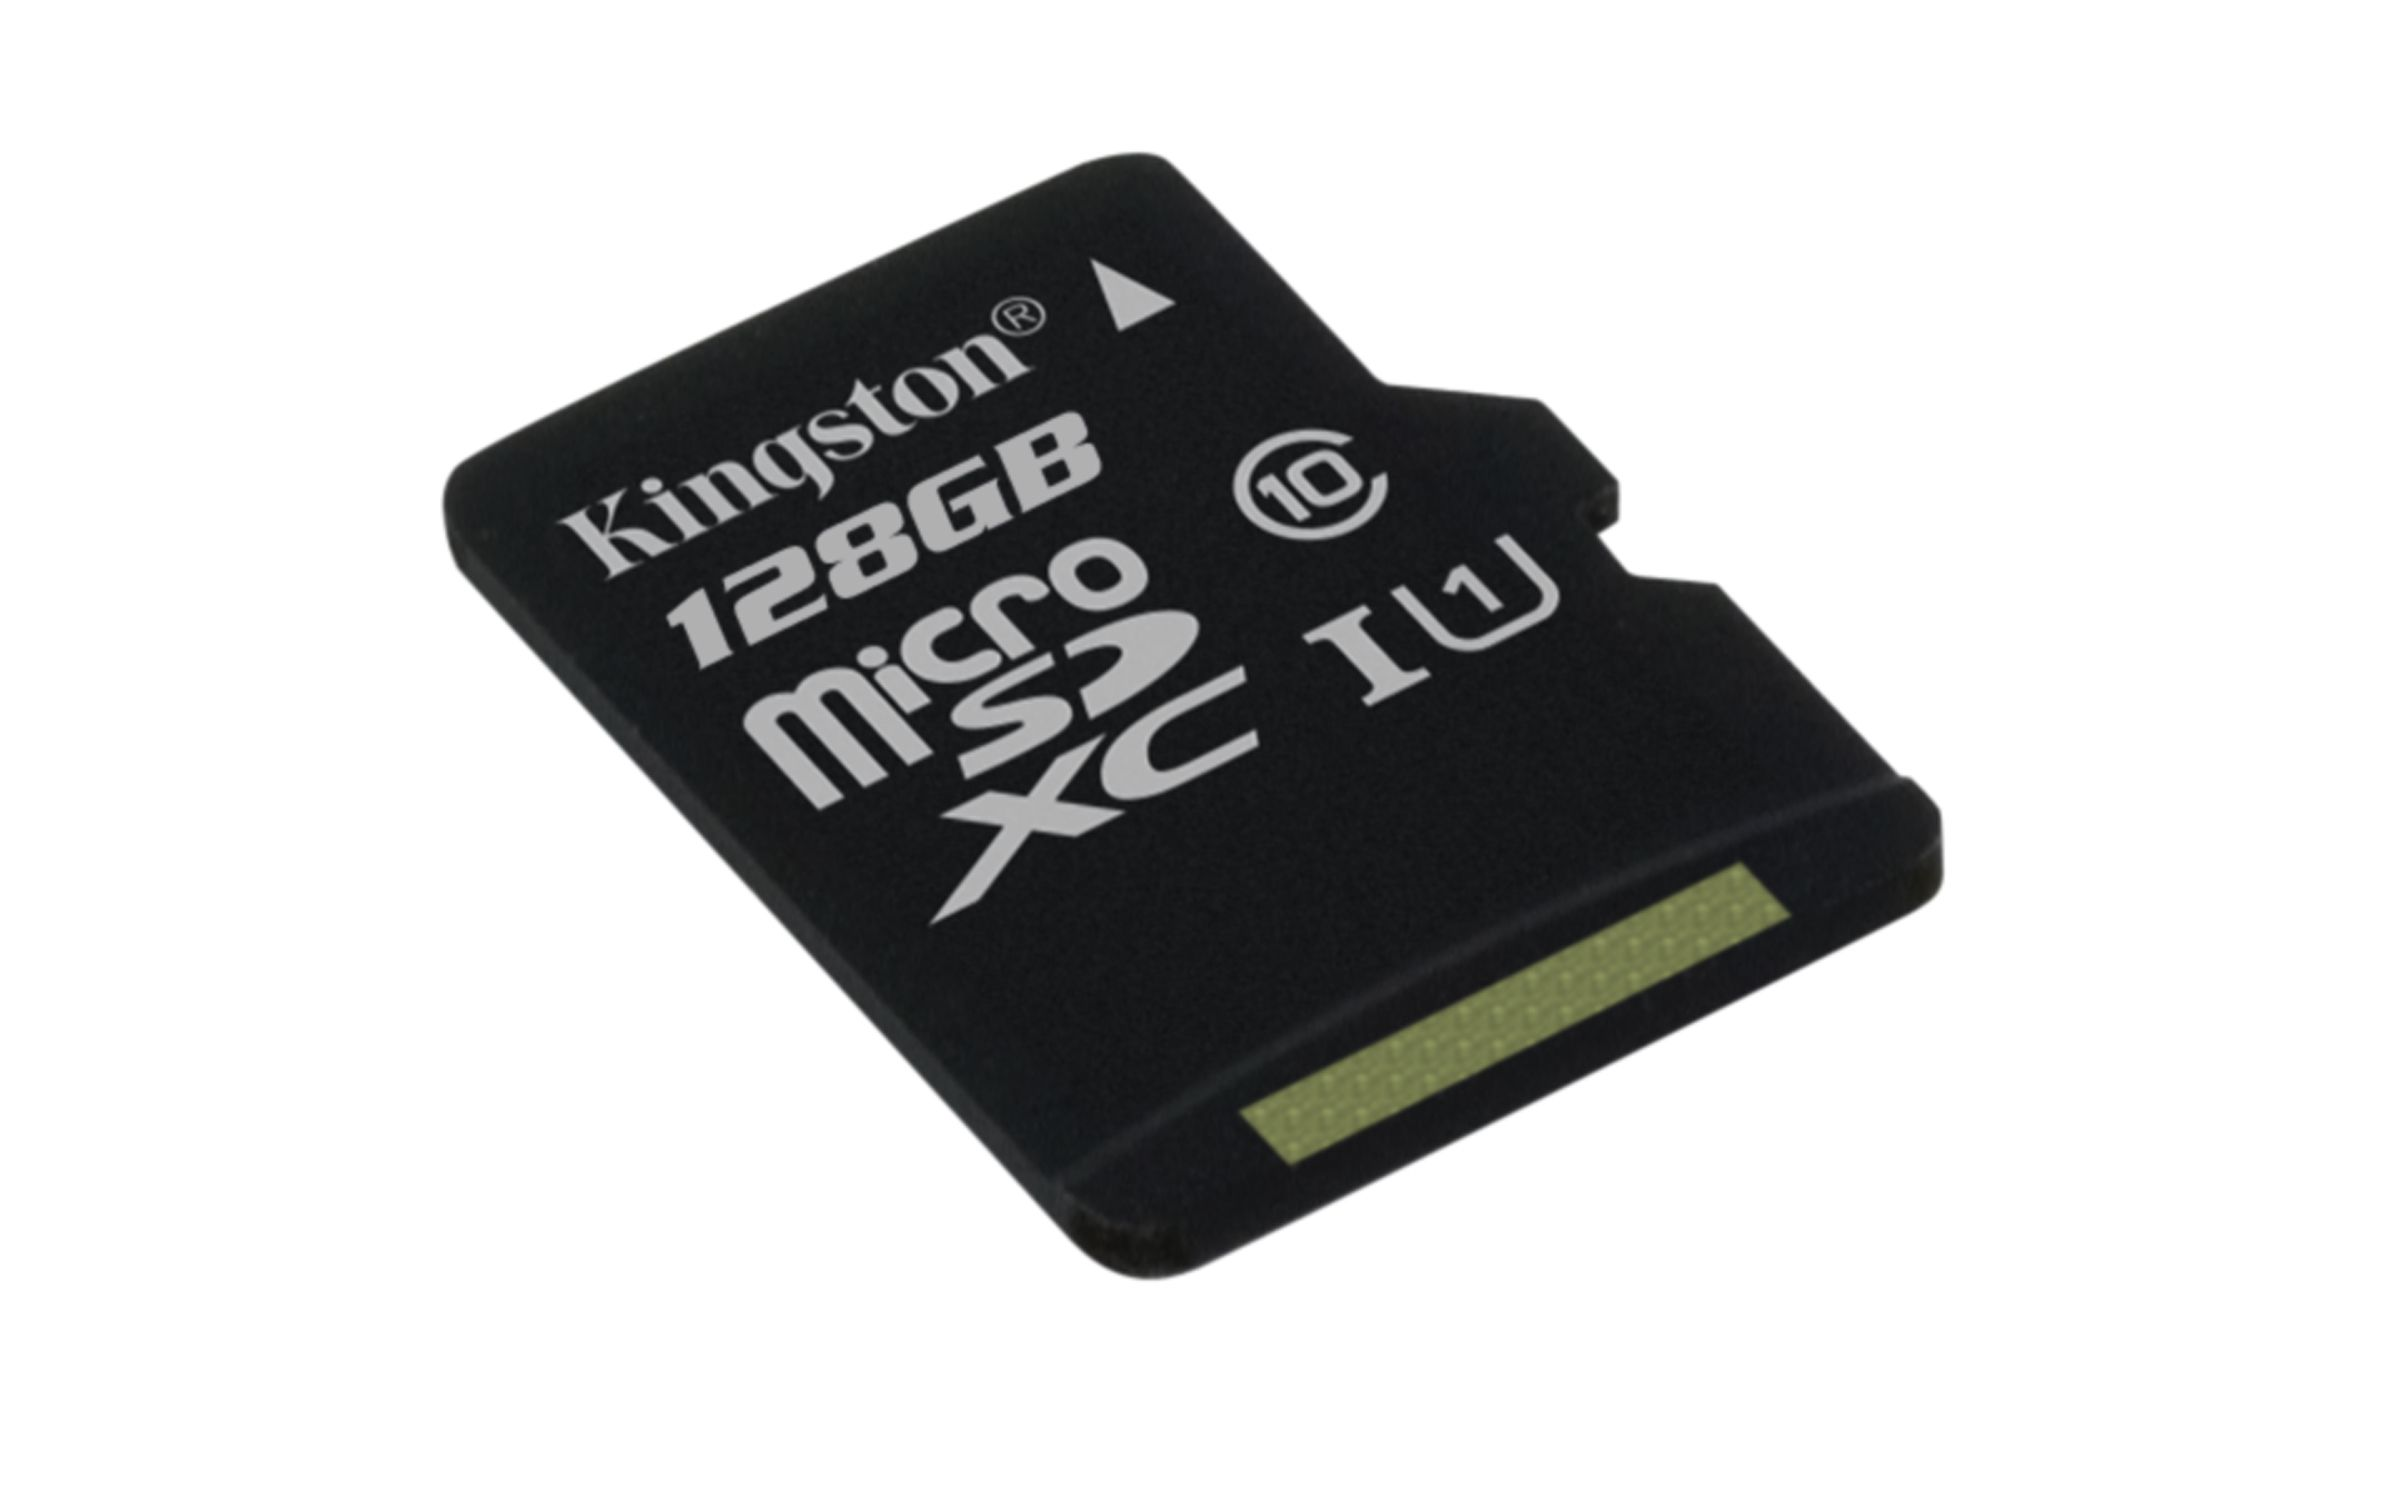 Ver Kingston Technology microSDXC Class 10 UHS I Card 128GB